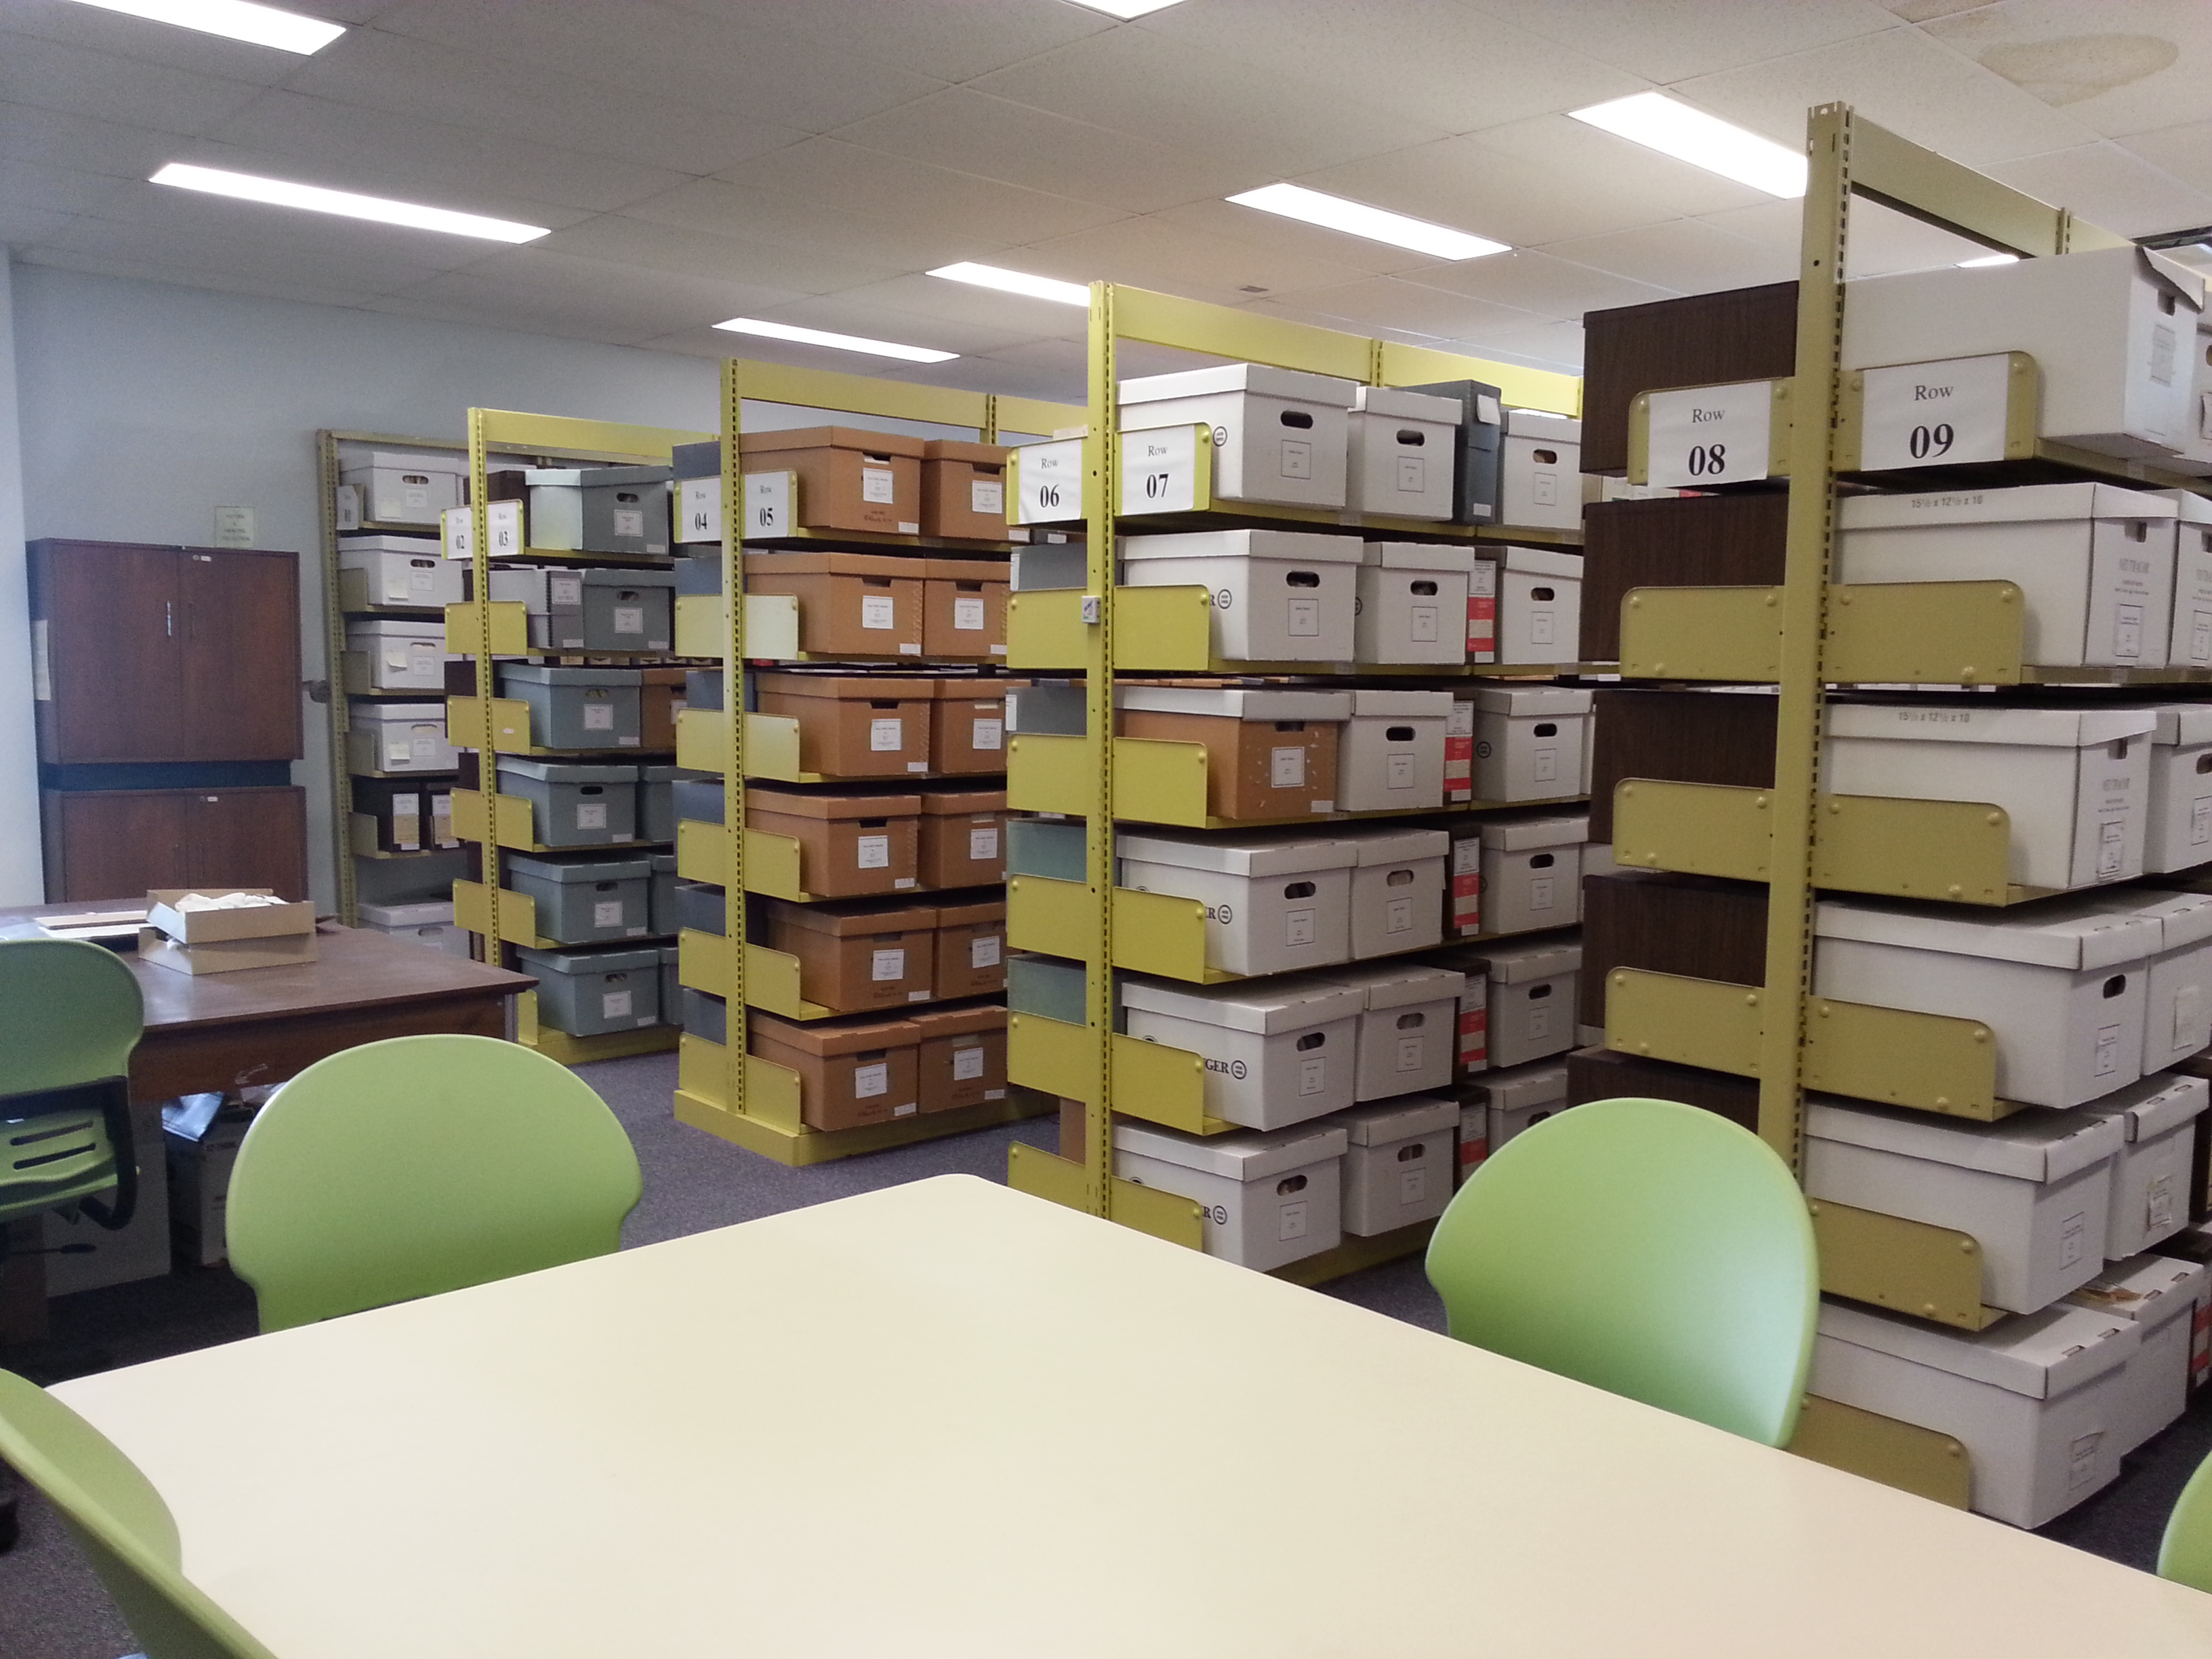 Archives room, LI5001